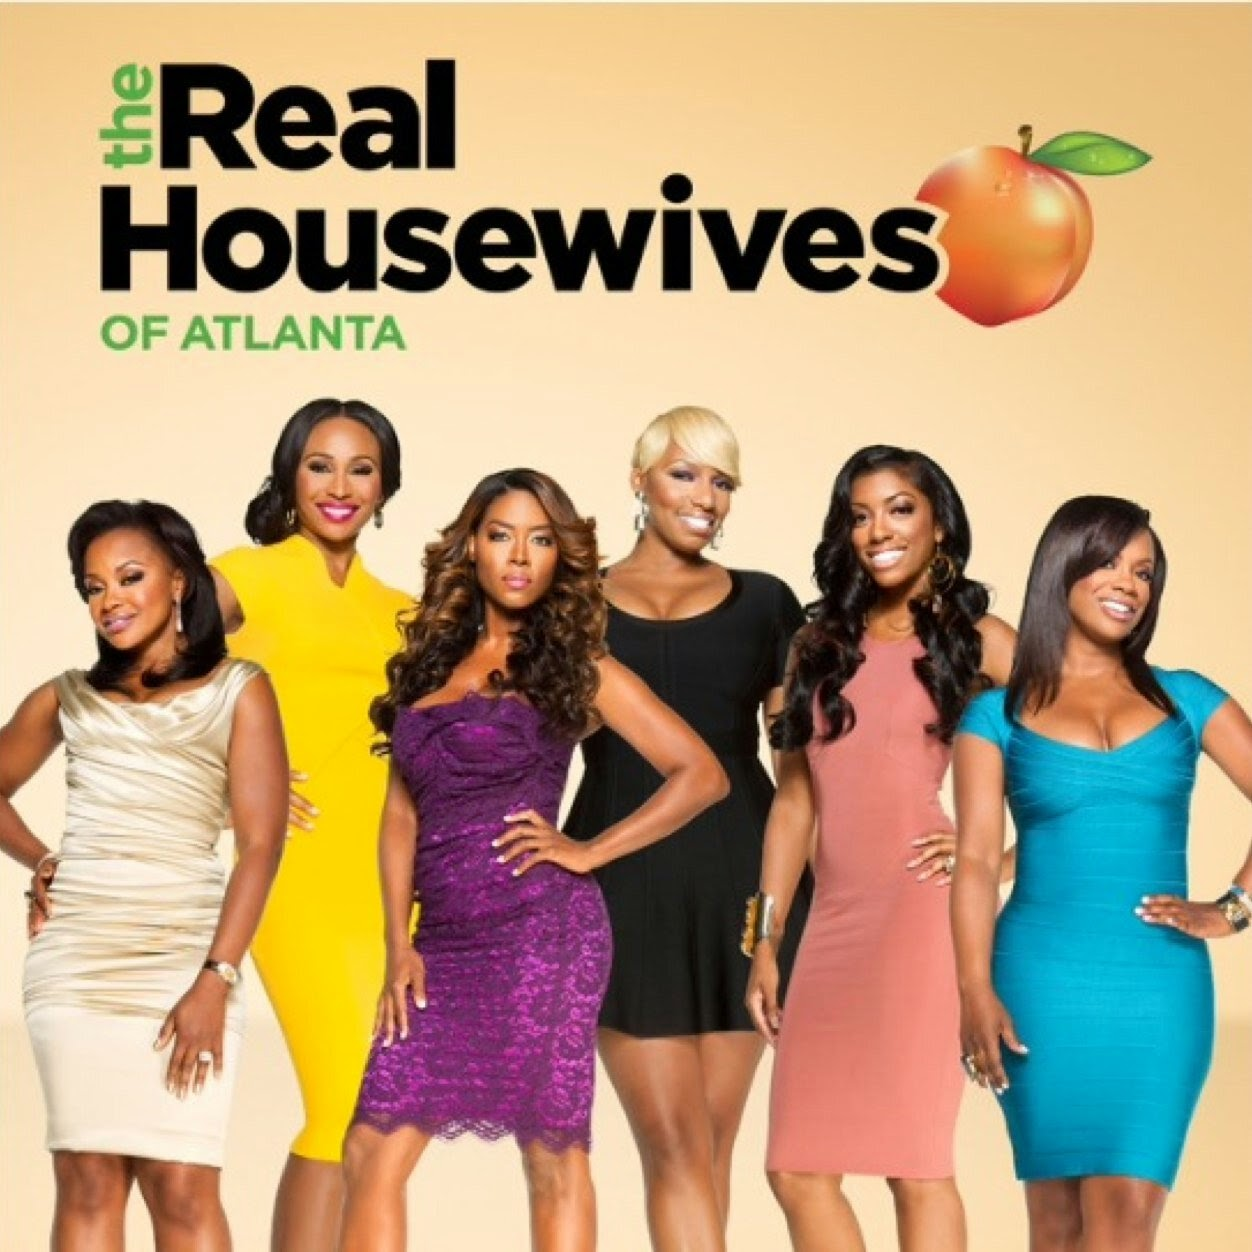 iRealHousewives | The 411 On American + International Real ...